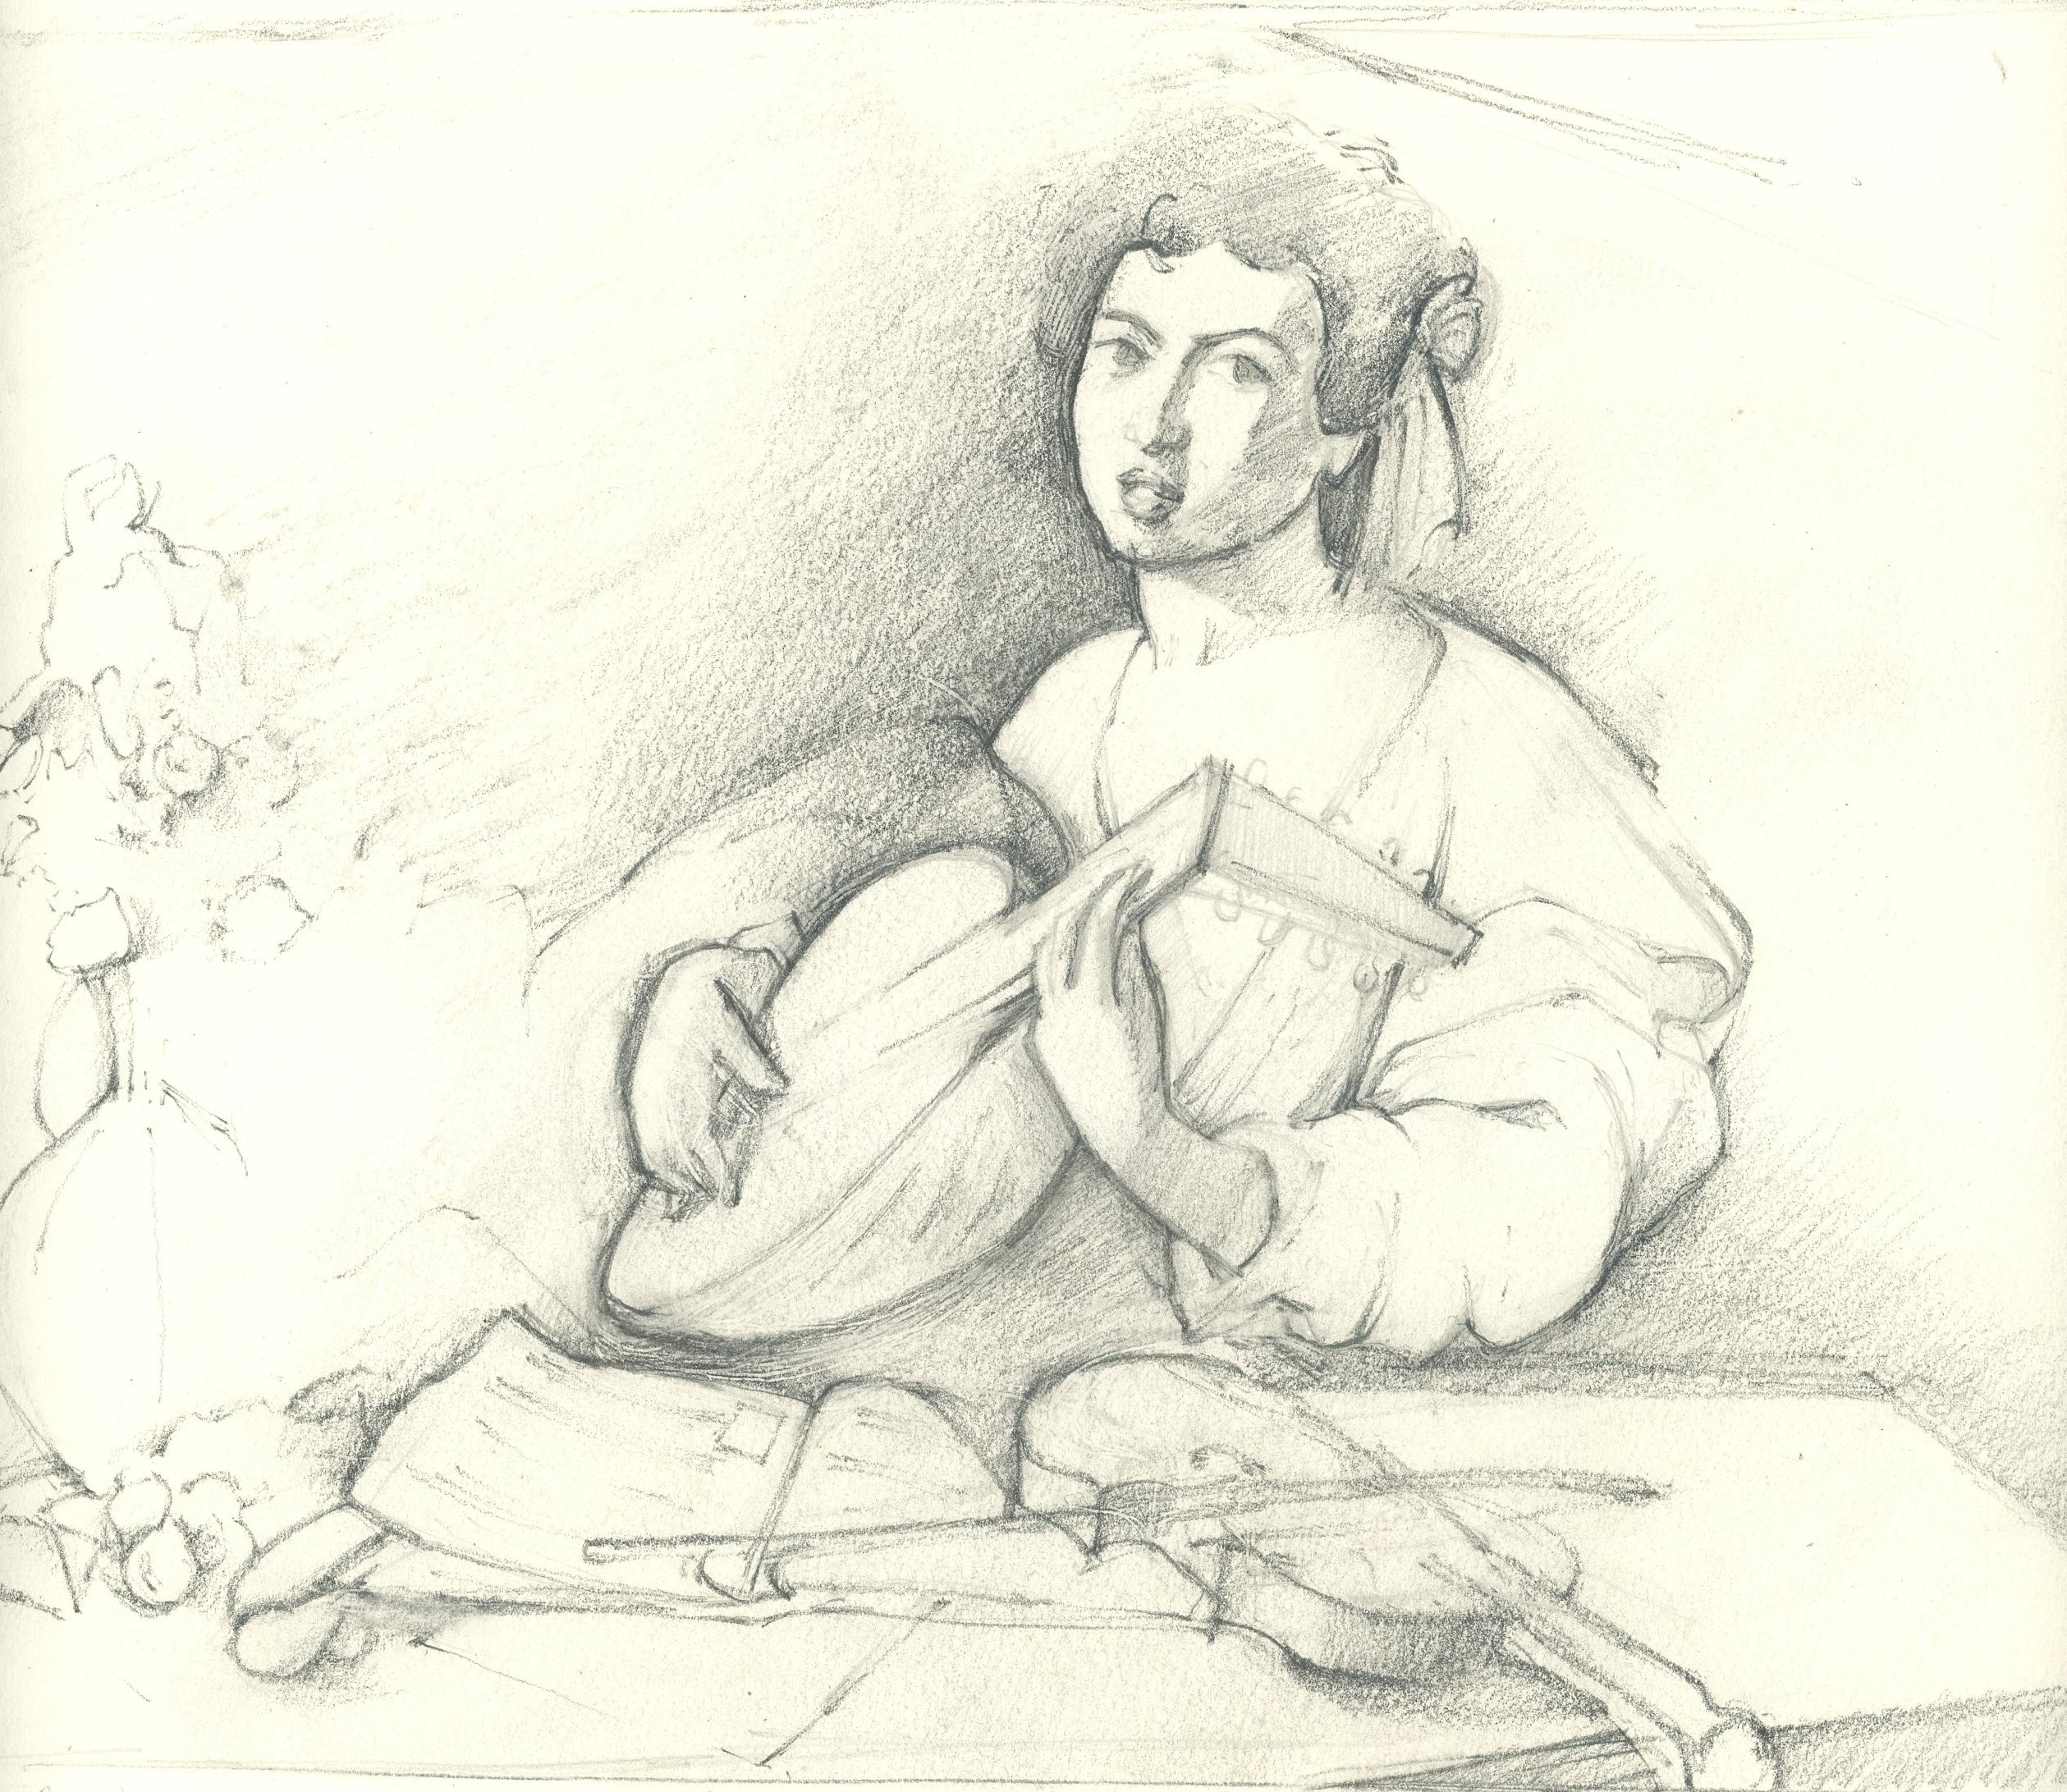 Drawn figurine composition Practice Old the Lute drawing